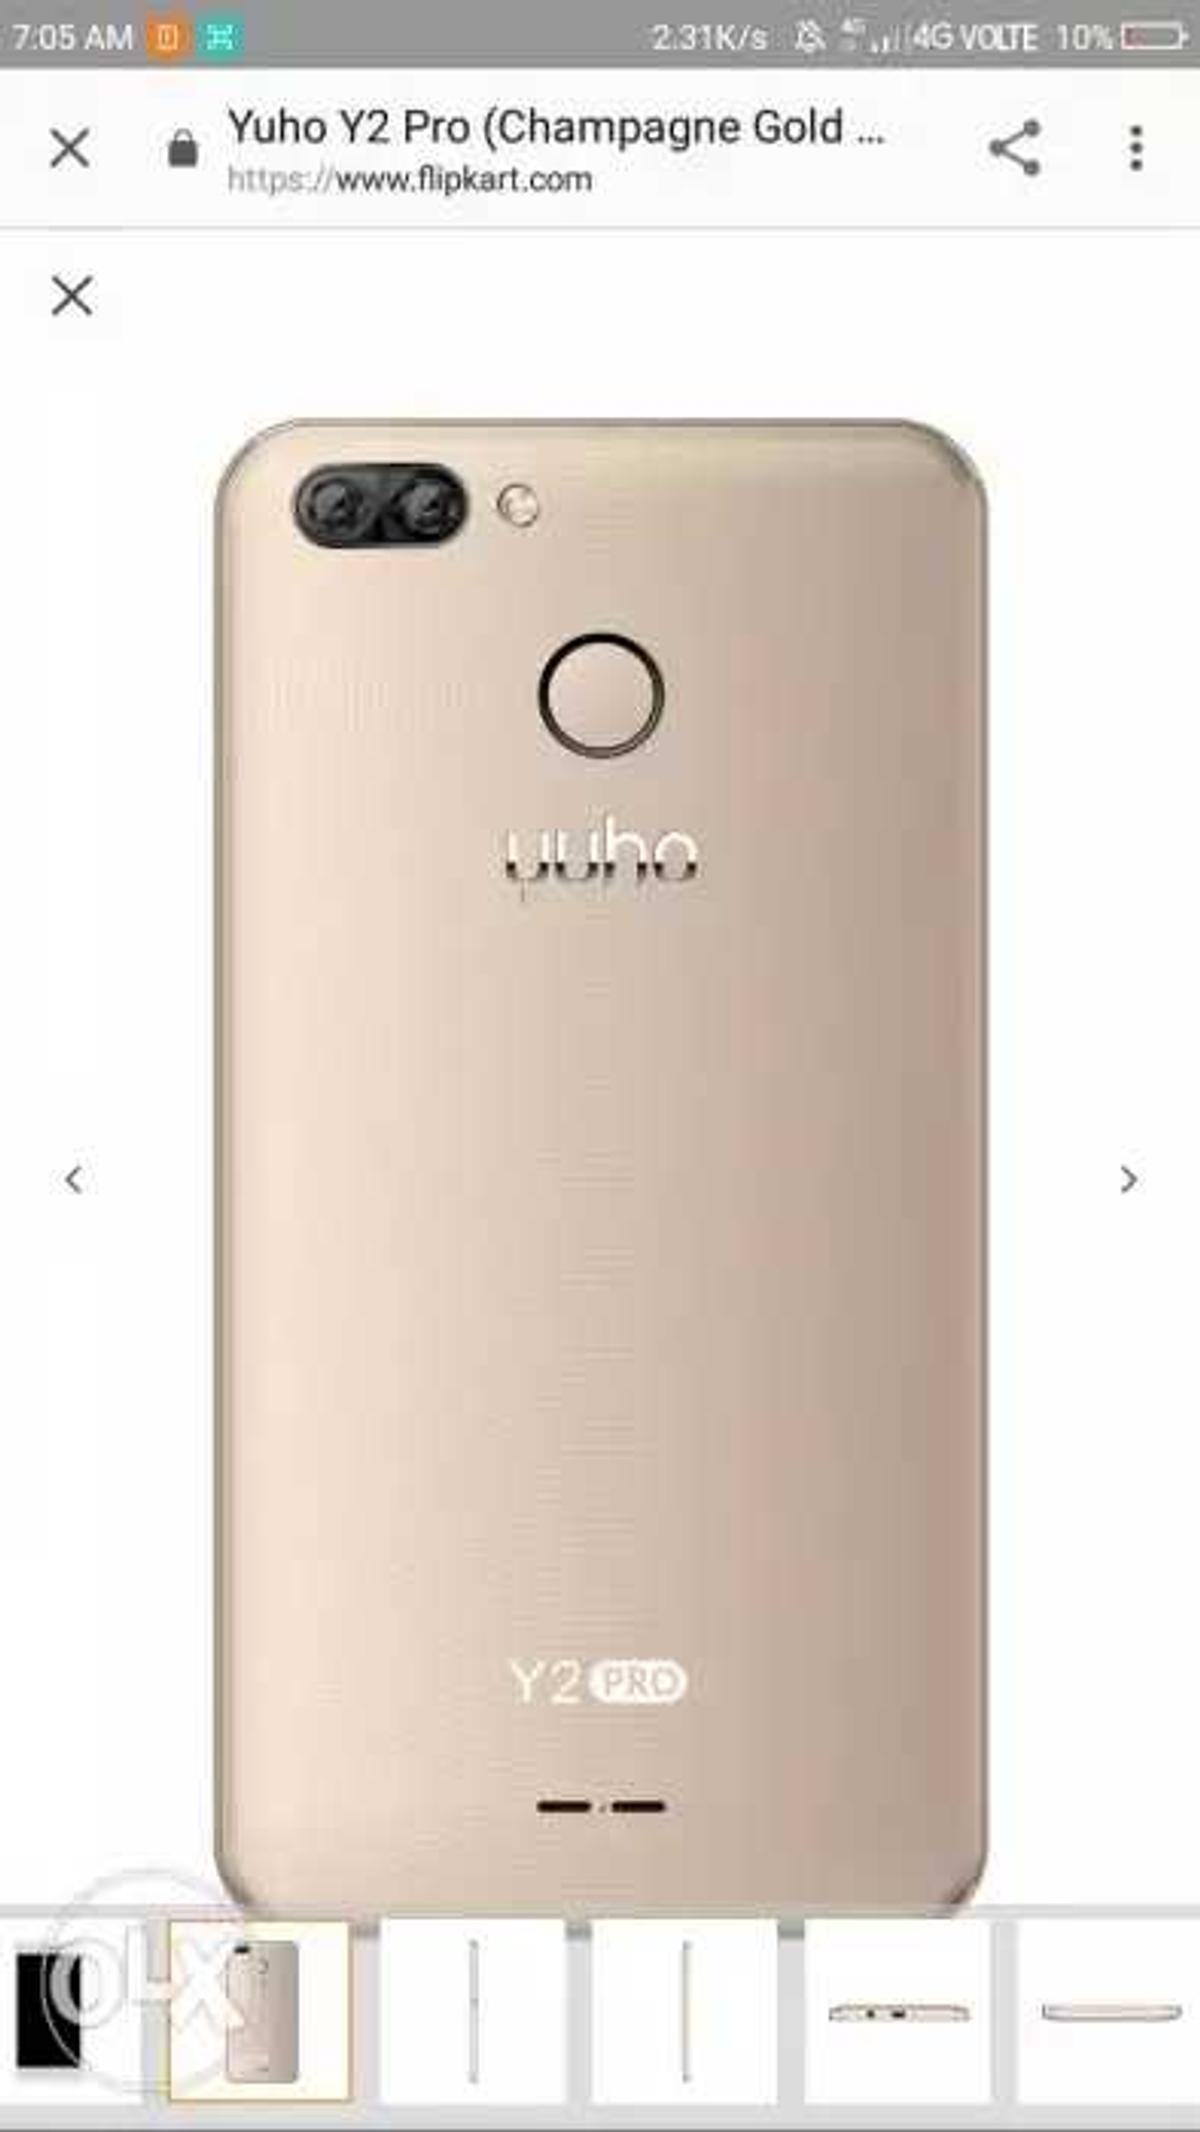 mobile yuho in for ₹4,500 00 for sale - Shpock